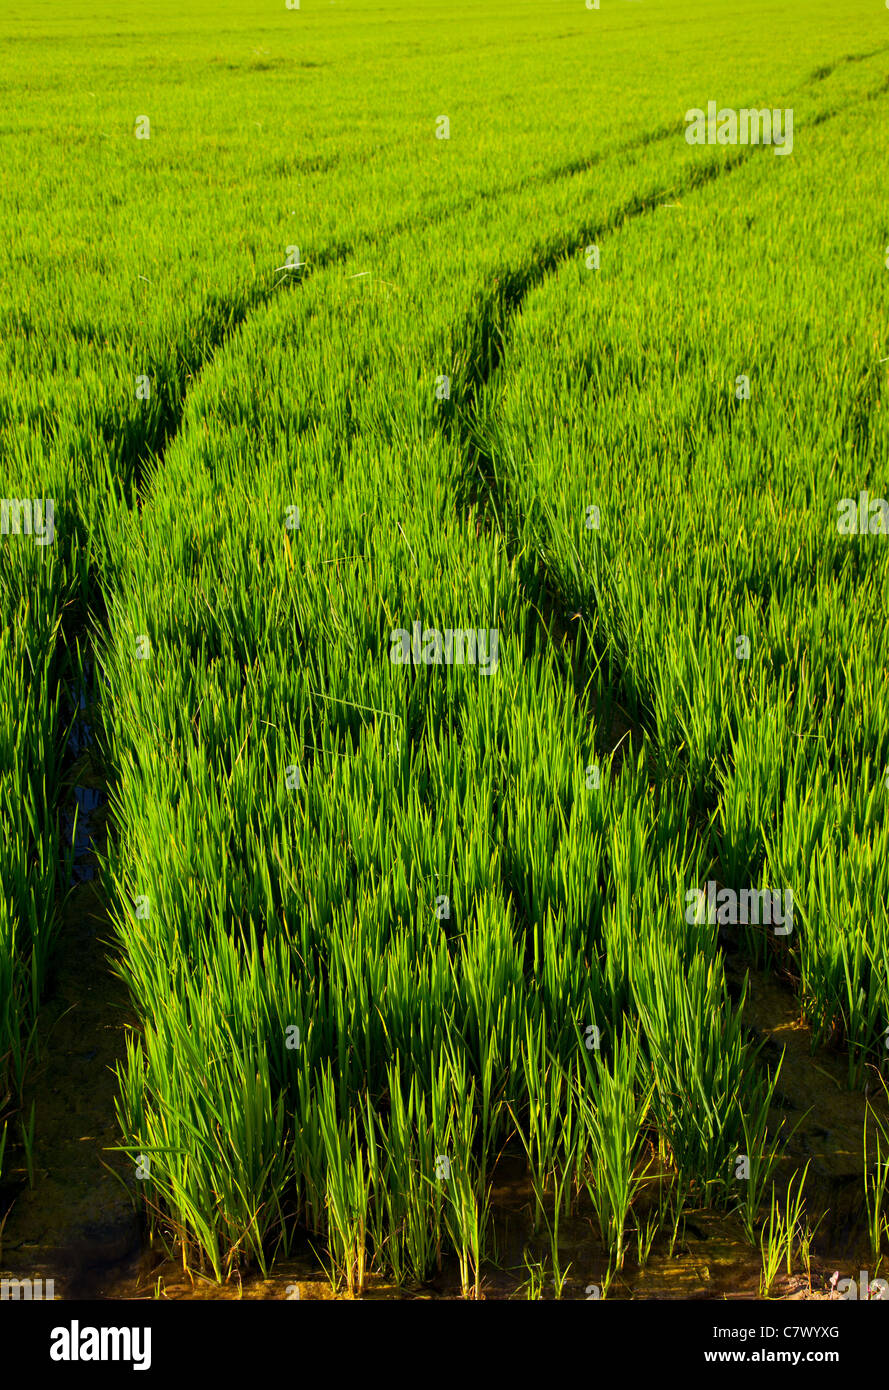 green grass rice field in Spain with tractor wheels footprint Stock Photo